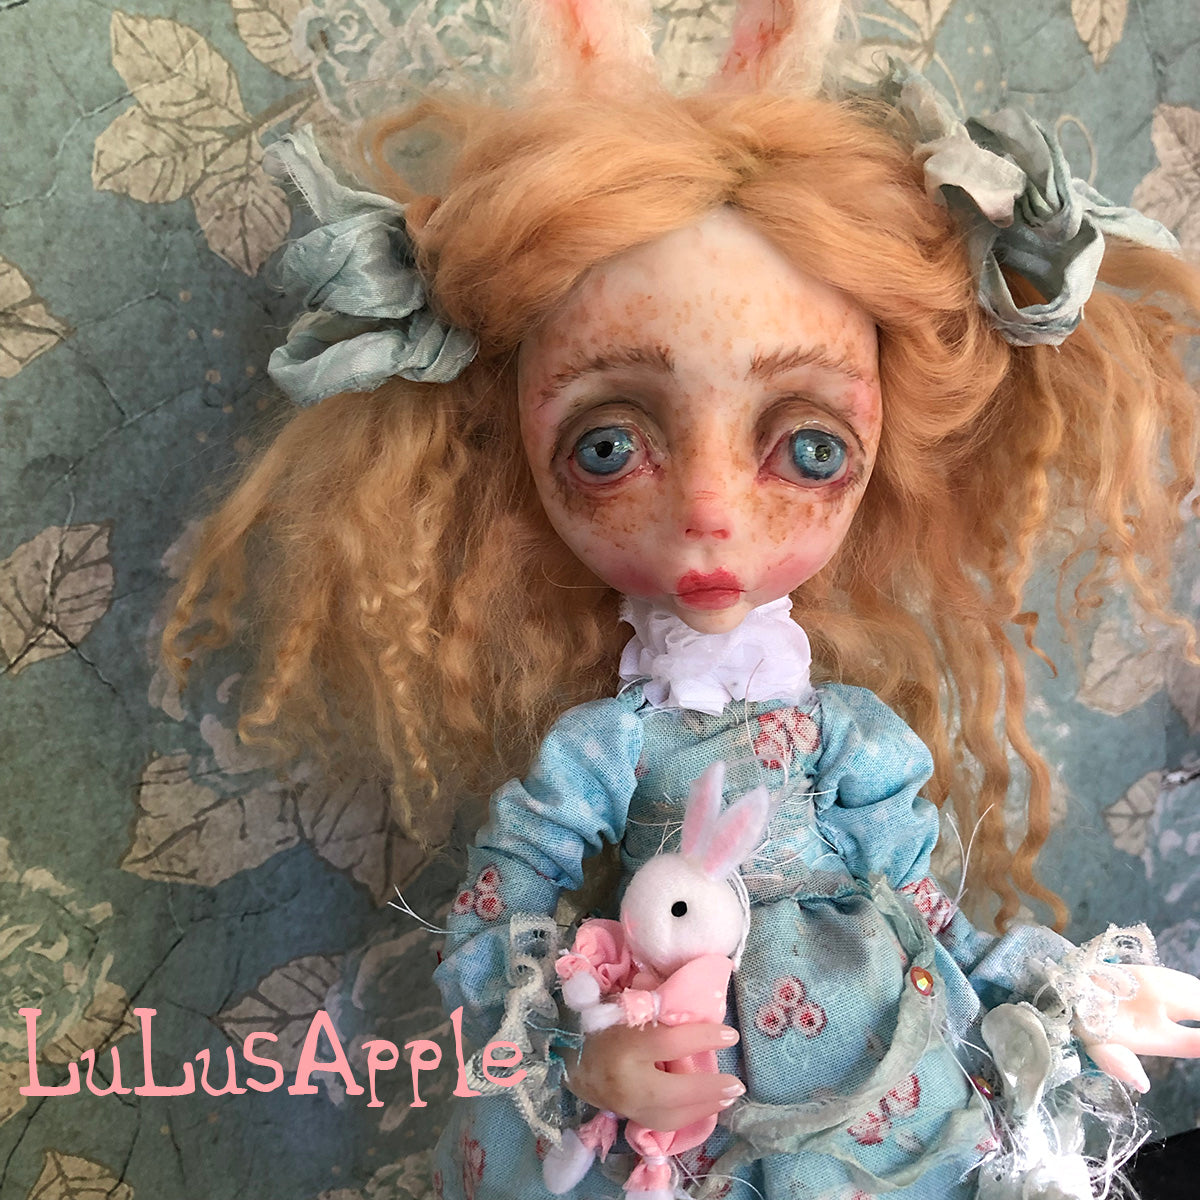 Miss. Betty Butters the Bunny freckled springtime OOAK LuLusApple Art Doll